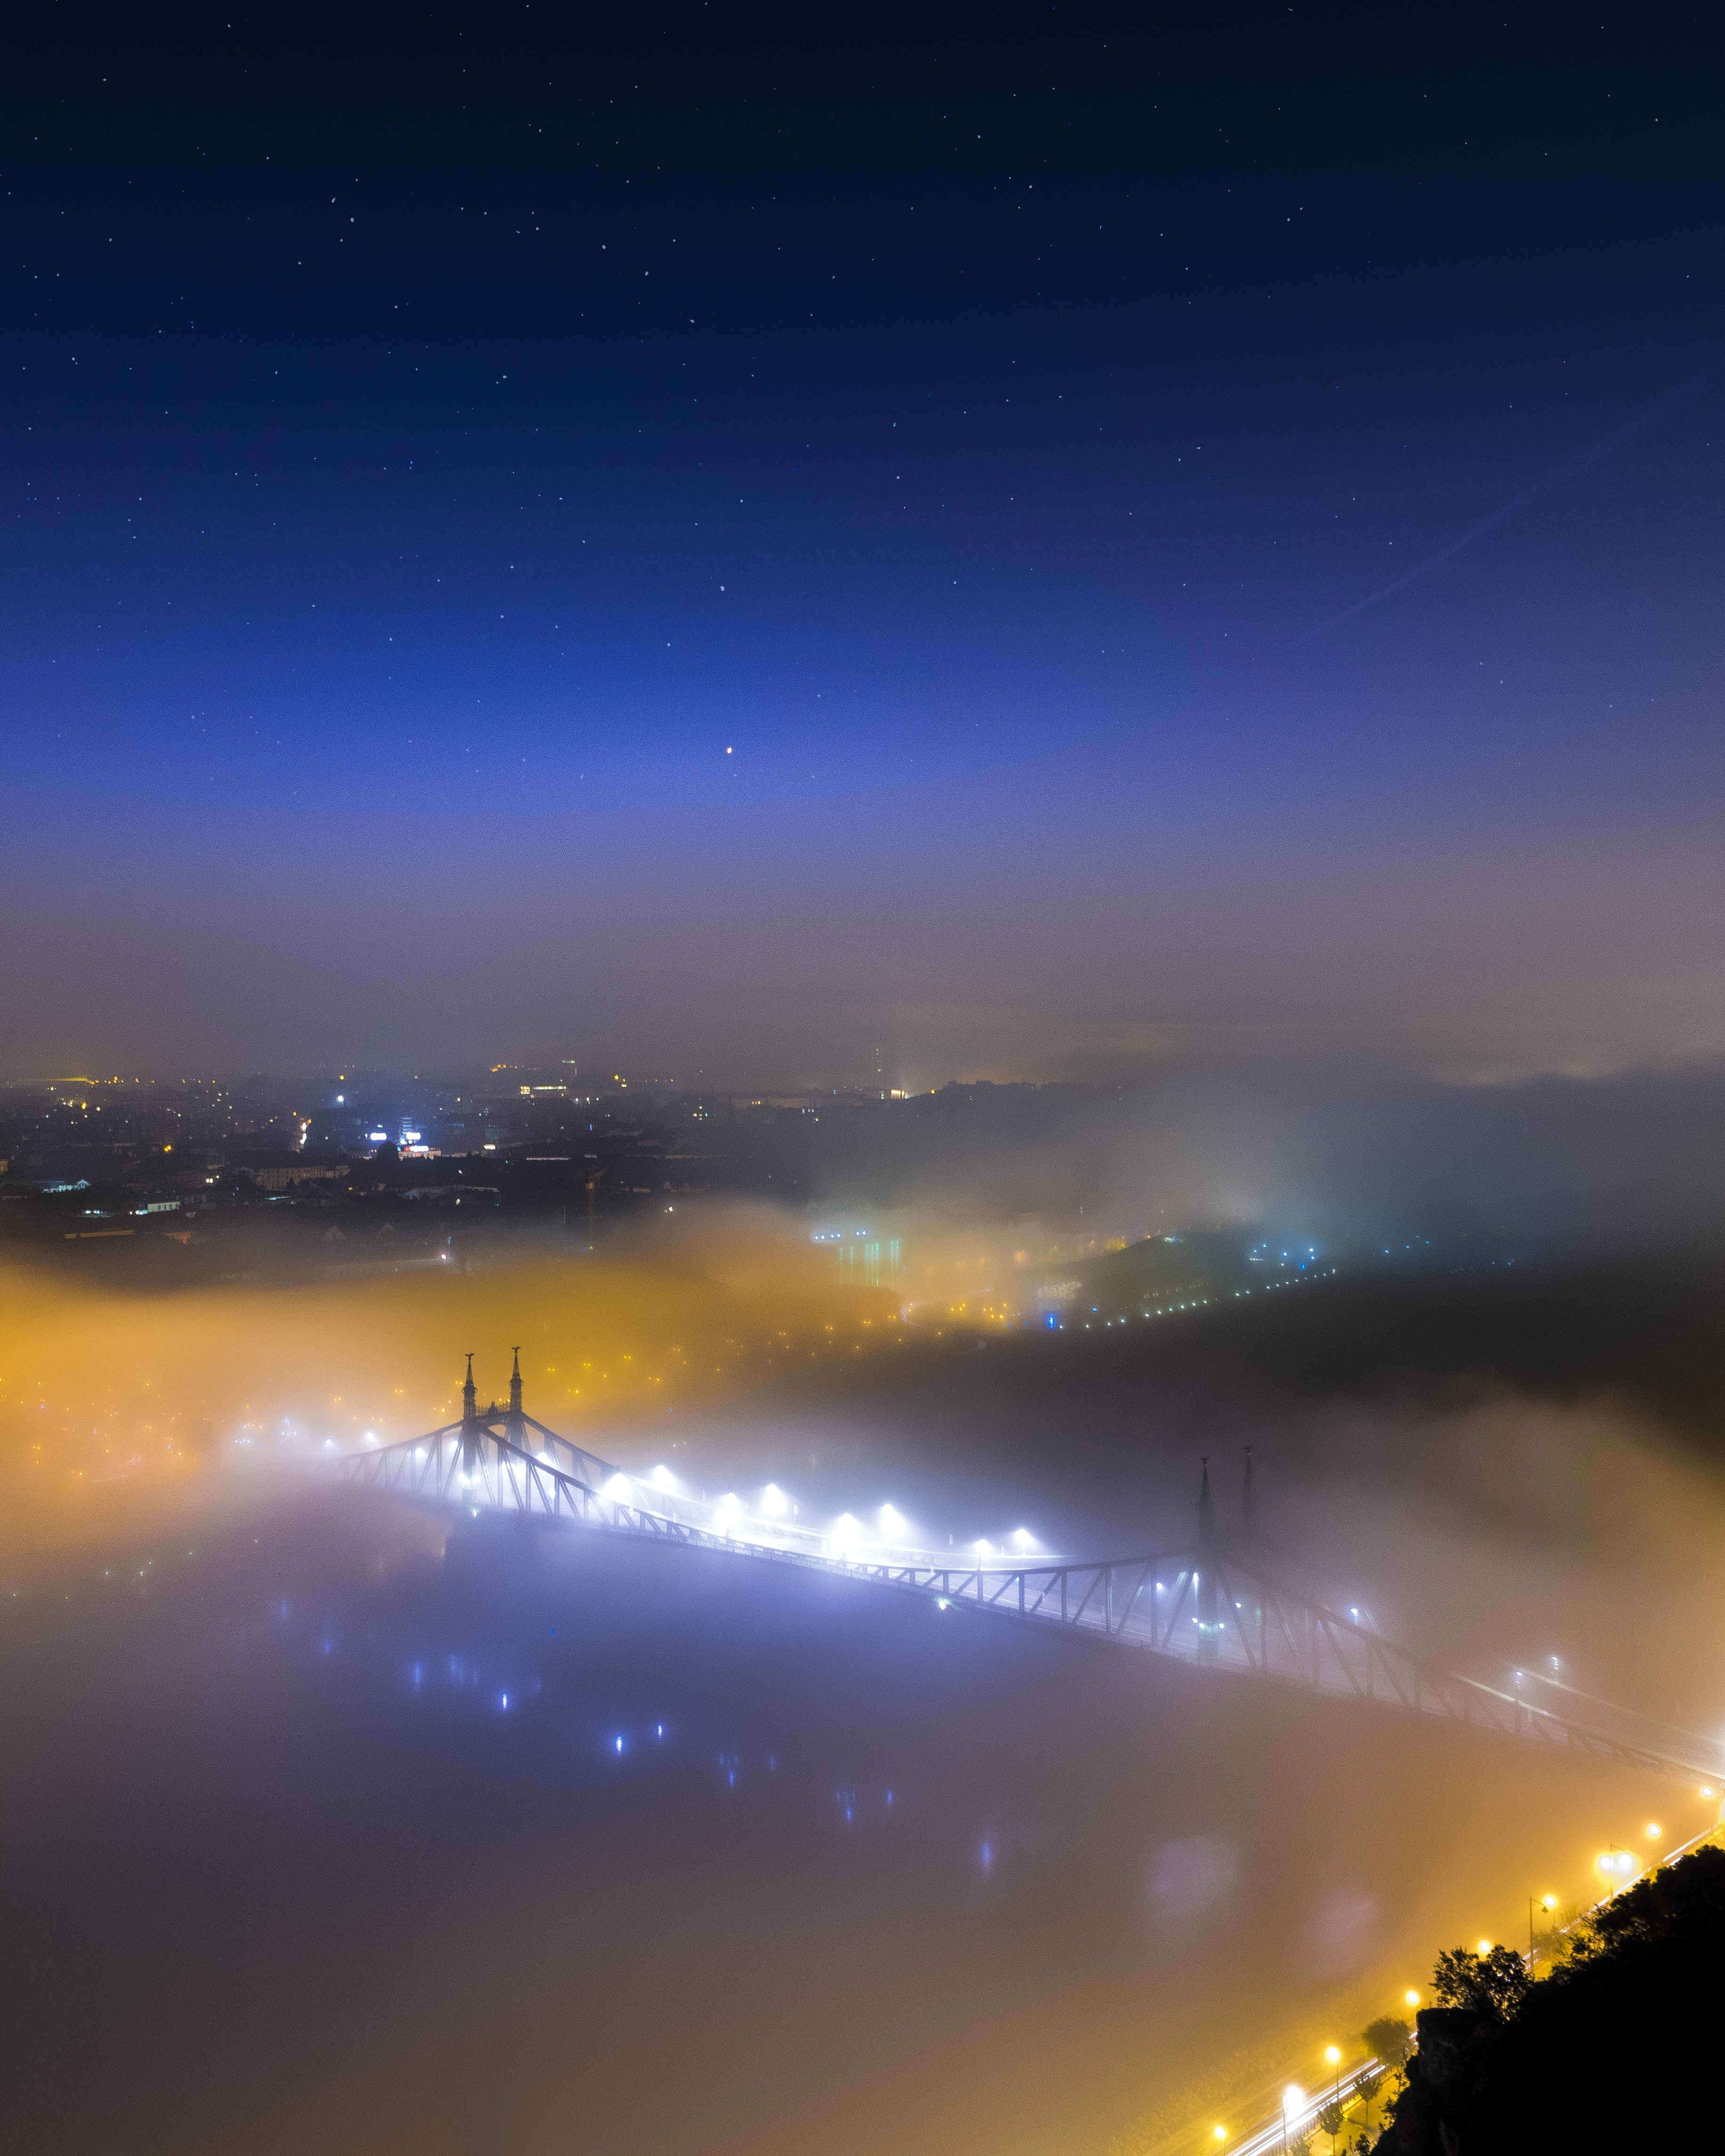 bridge covered with fog during nighttime